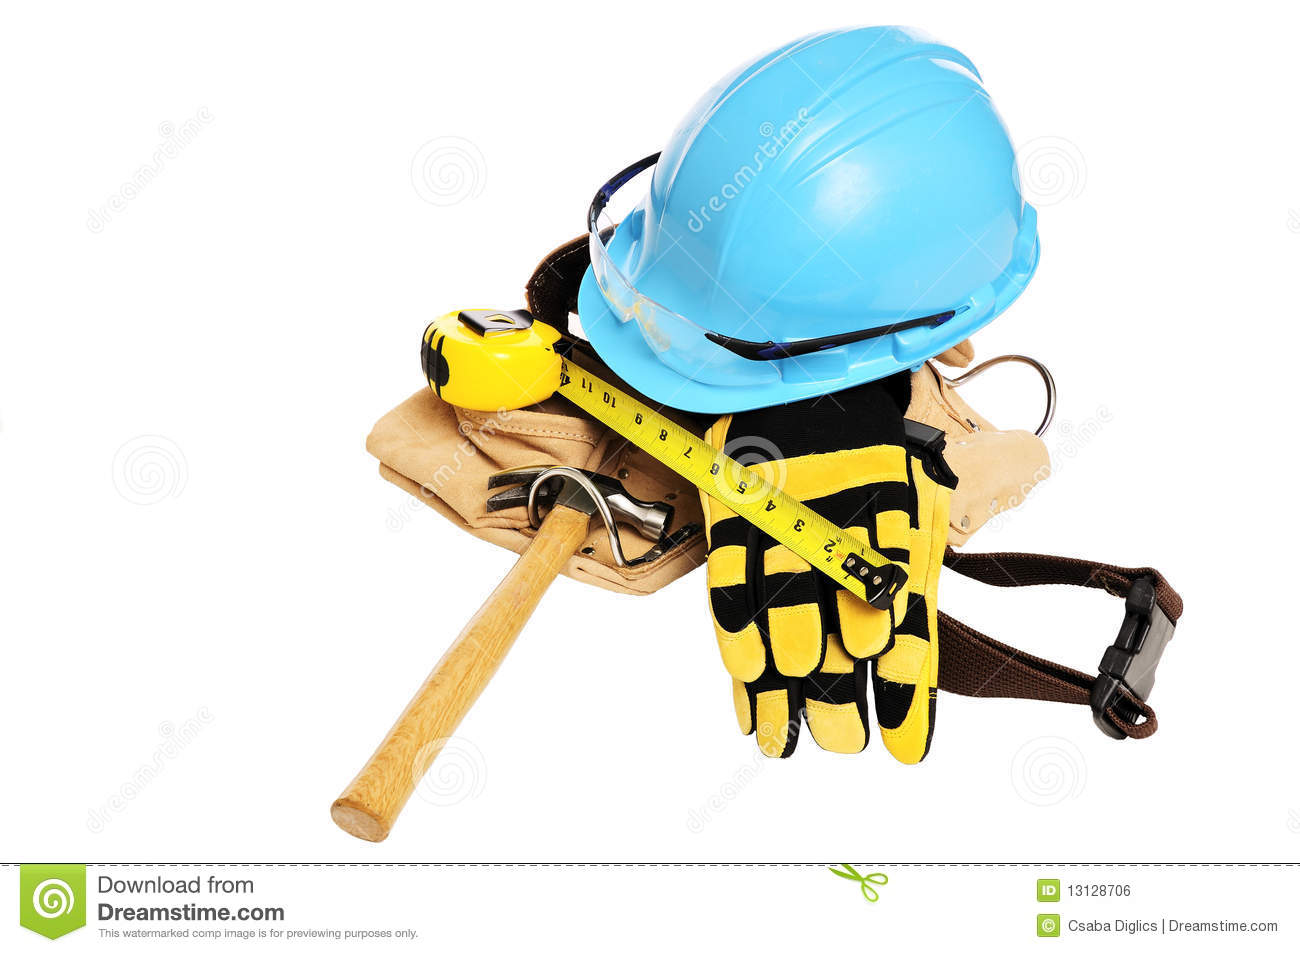 Construction Technology Tools : Construction technology tools